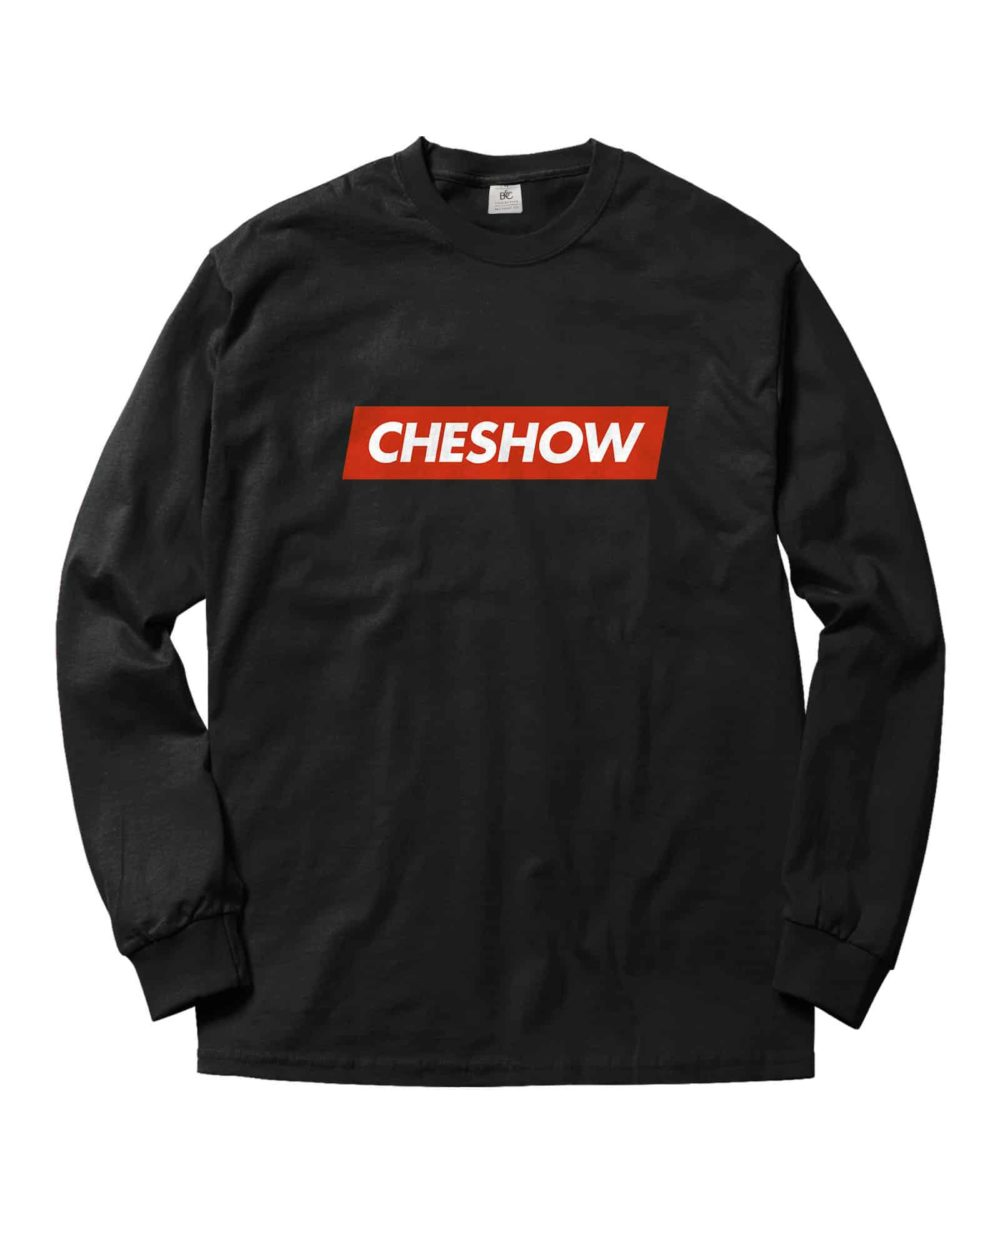 Ohm-Felpa-Sweatshirt-tubeshop-italia-youtube